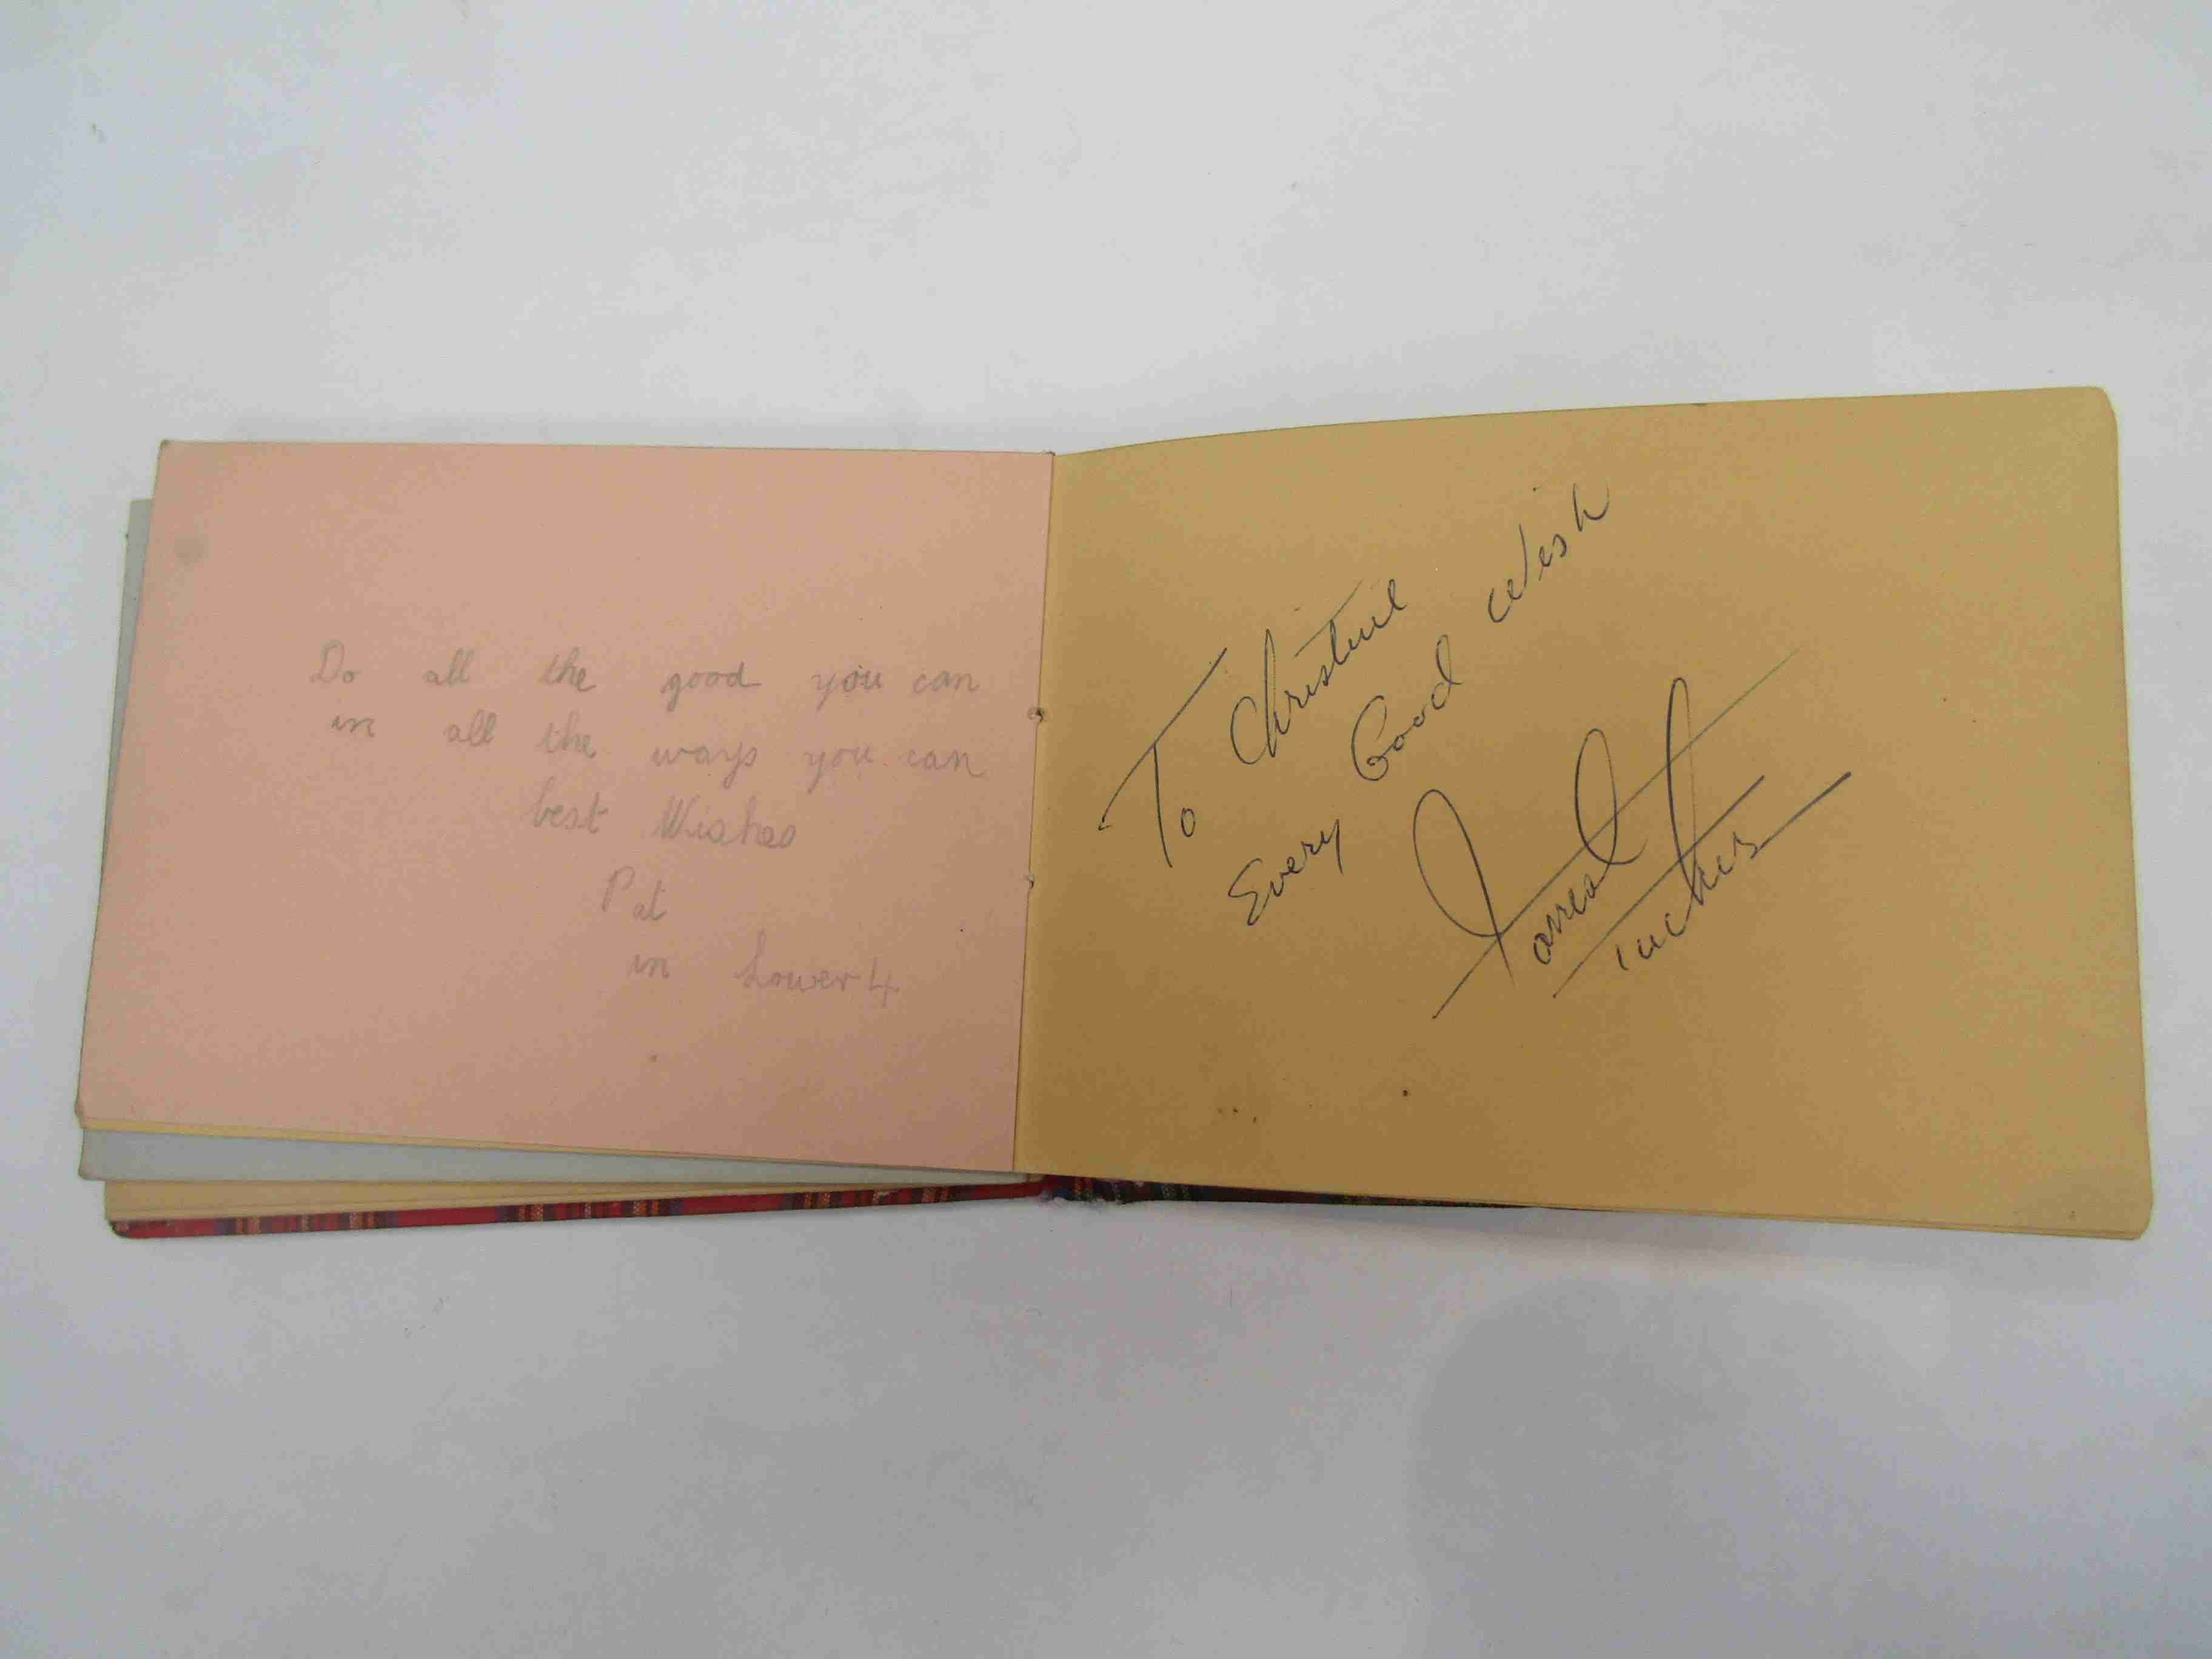 Two 1950s/60s autograph books containing autographs by Benny Hill, Honor Blackman, Barbara Shelley, - Image 31 of 34